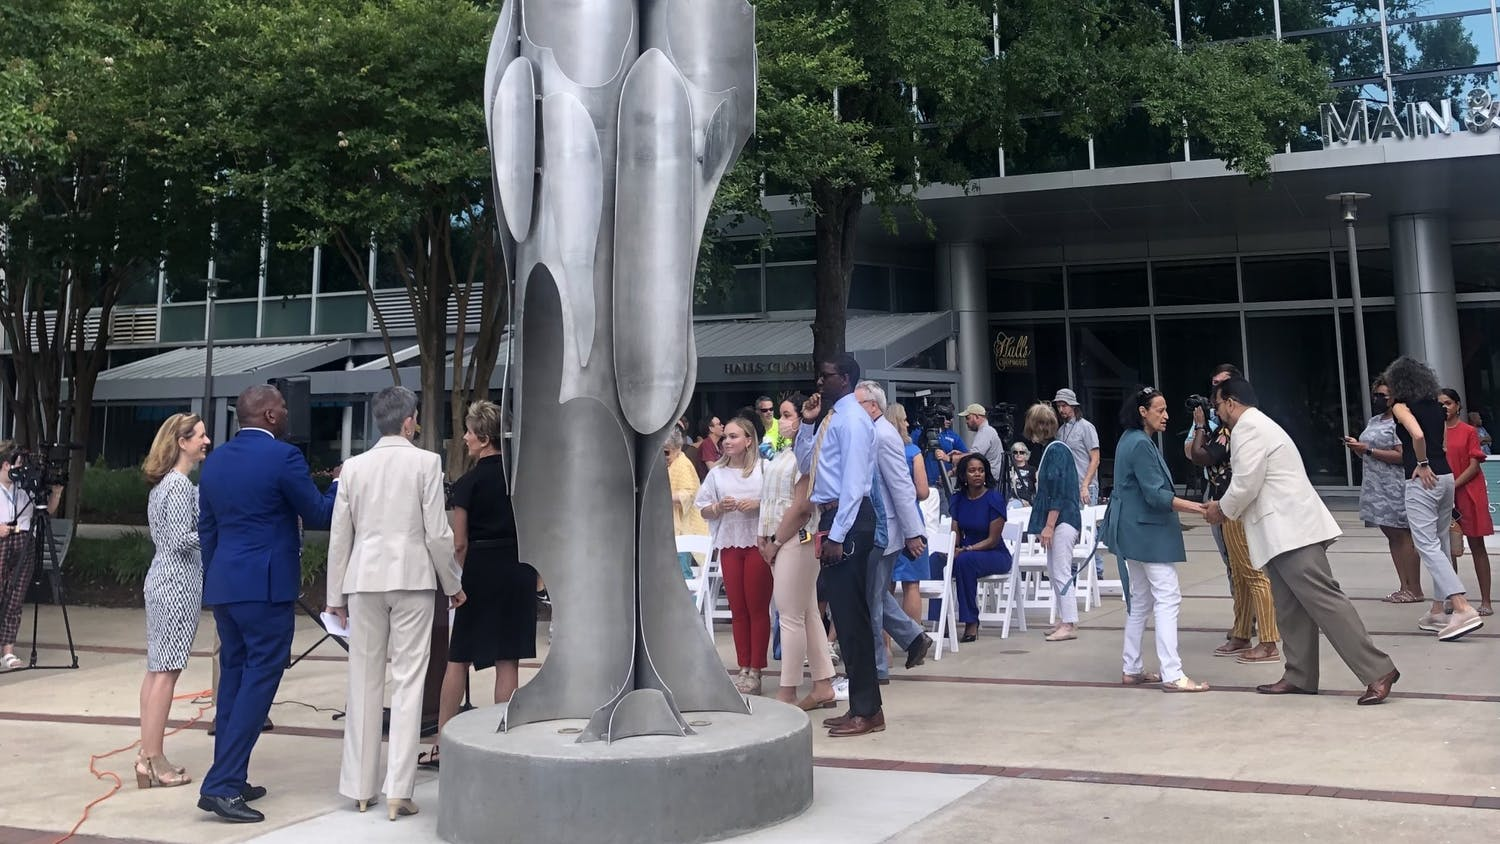 DeeDee Morrison designed the Architecture of Strength monument, which stands across from the Statehouse and was dedicated on June 16. The Columbia City of Women created this piece to combat an absence of female monuments in Columbia, according to its website.